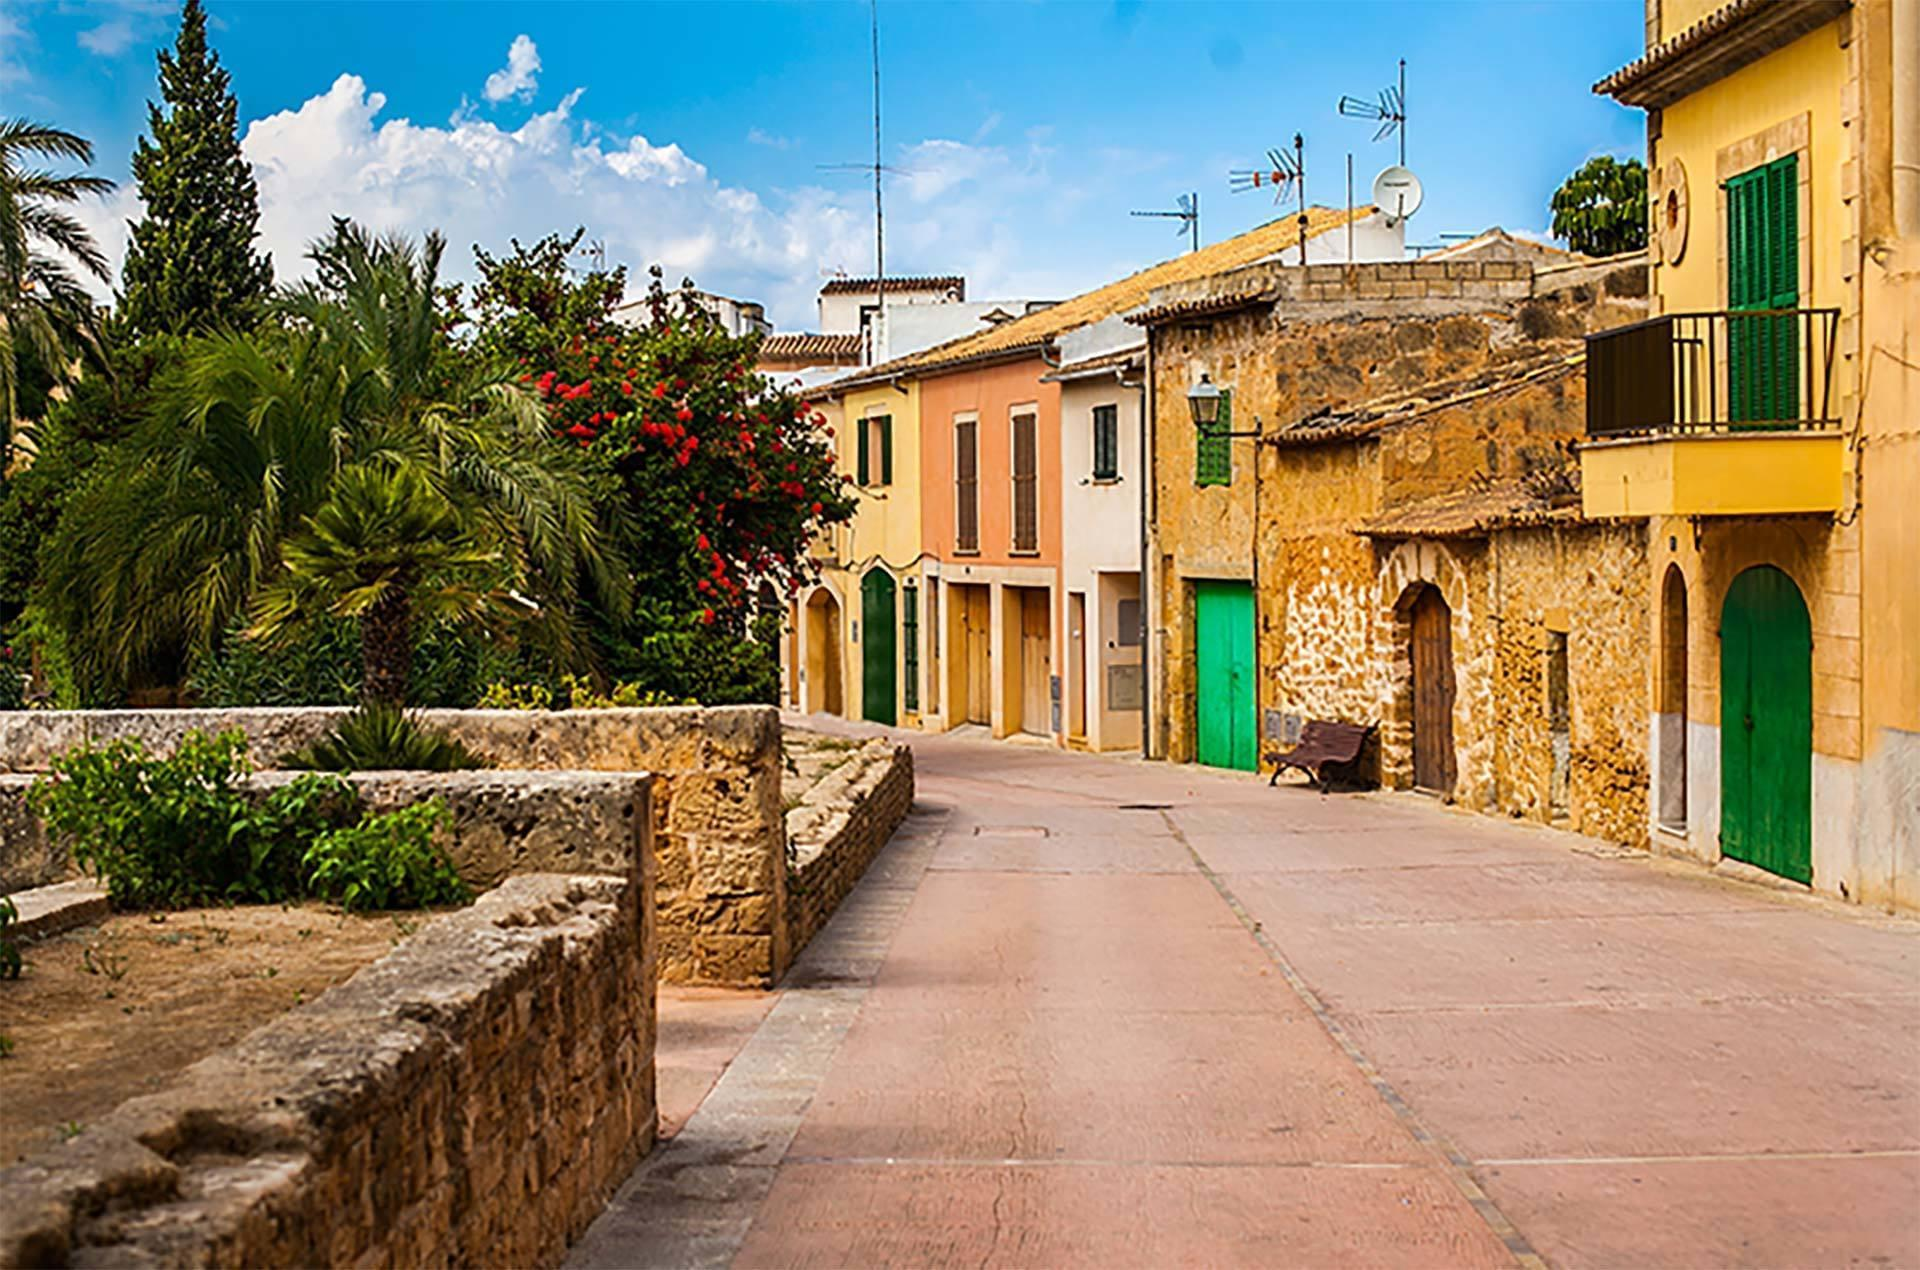 Alcudia Old Town Street